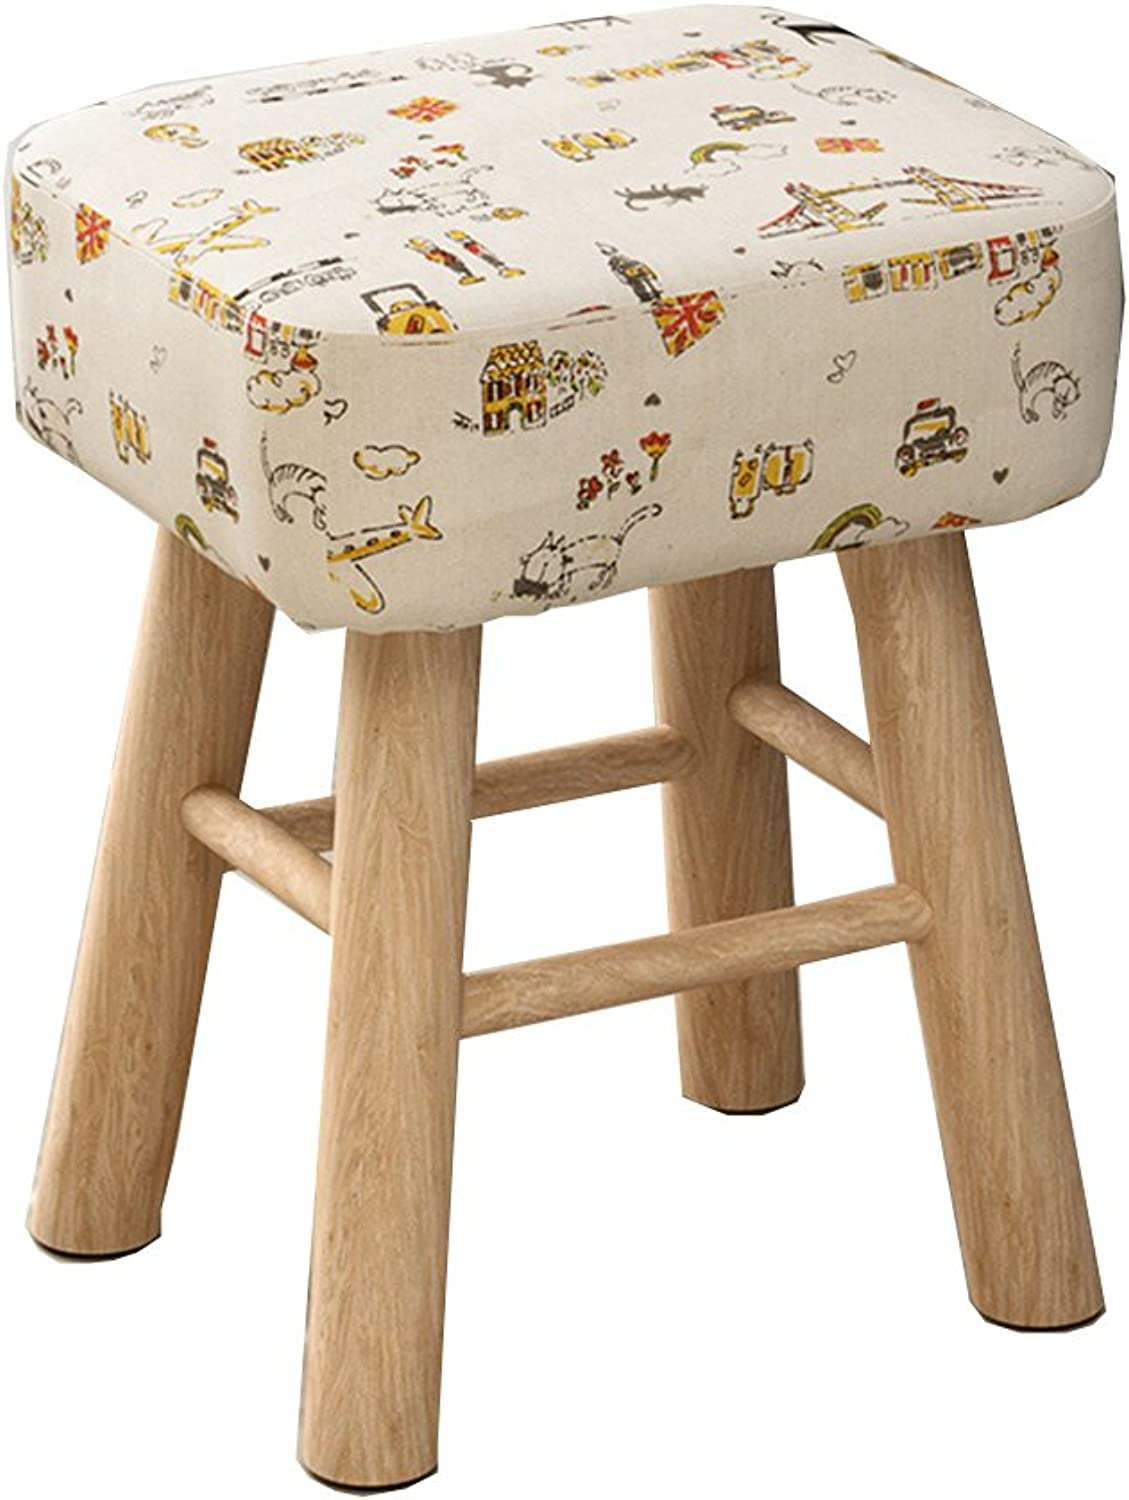 Stools Fabric Fashion Table Chair Stools Solid Wood Computer Stool Multifunction Stool 35  30  43cm